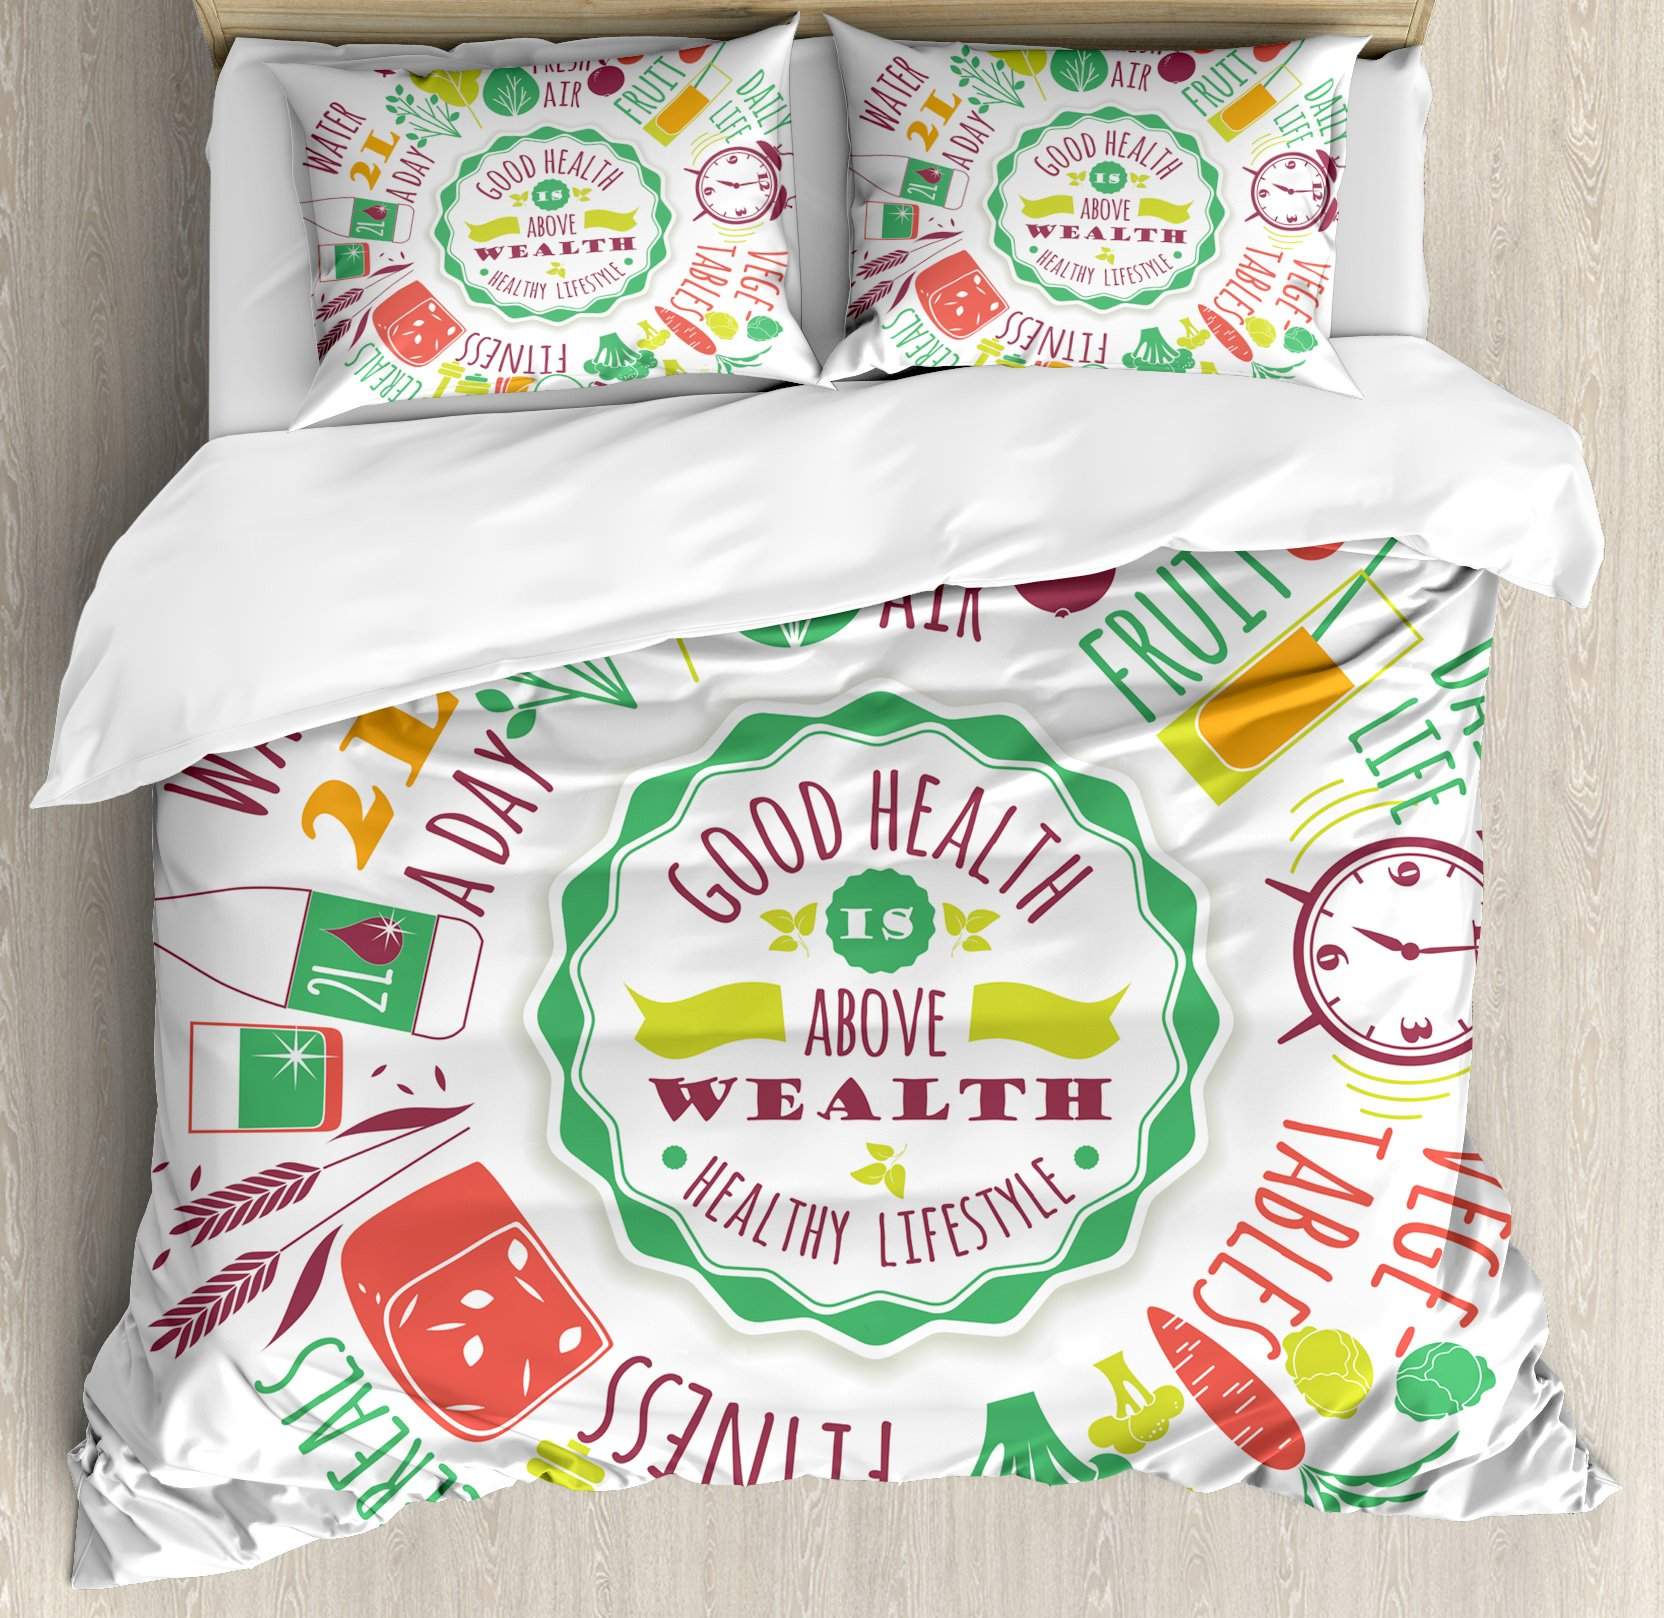 Fitness King Size Duvet Cover Set by Ambesonne, Good Health is Above Wealth Wellness Motivation Water Fruits Fitness Walk Cereals, Decorative 3 Piece Bedding Set with 2 Pillow Shams, Multicolor